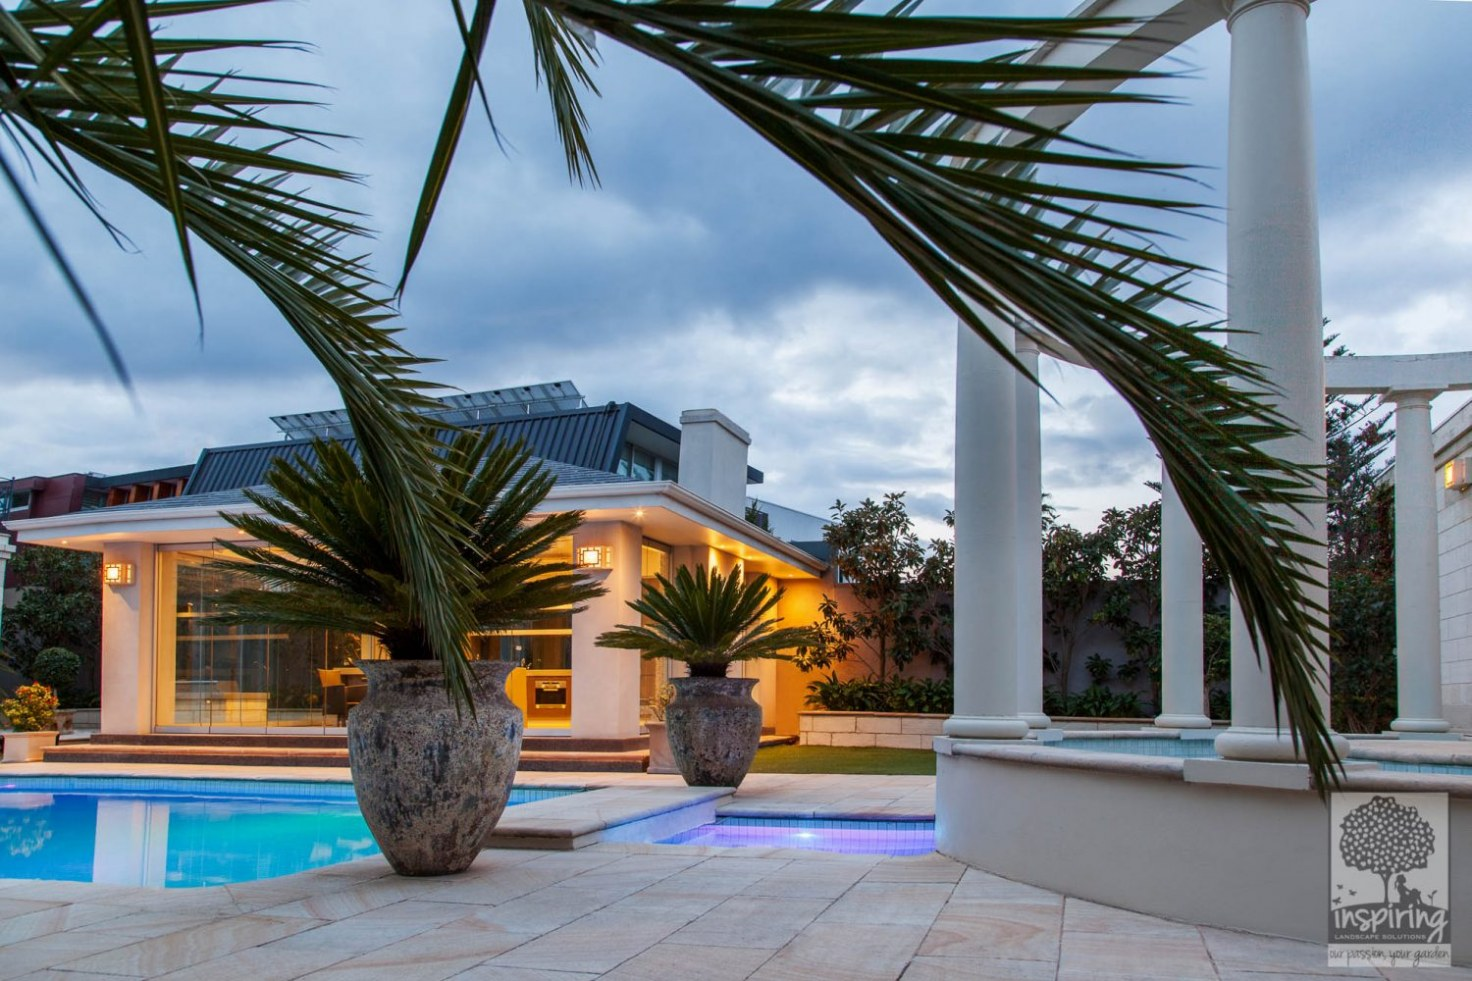 Brighton landscaped pool at night with lights on and styled with pots